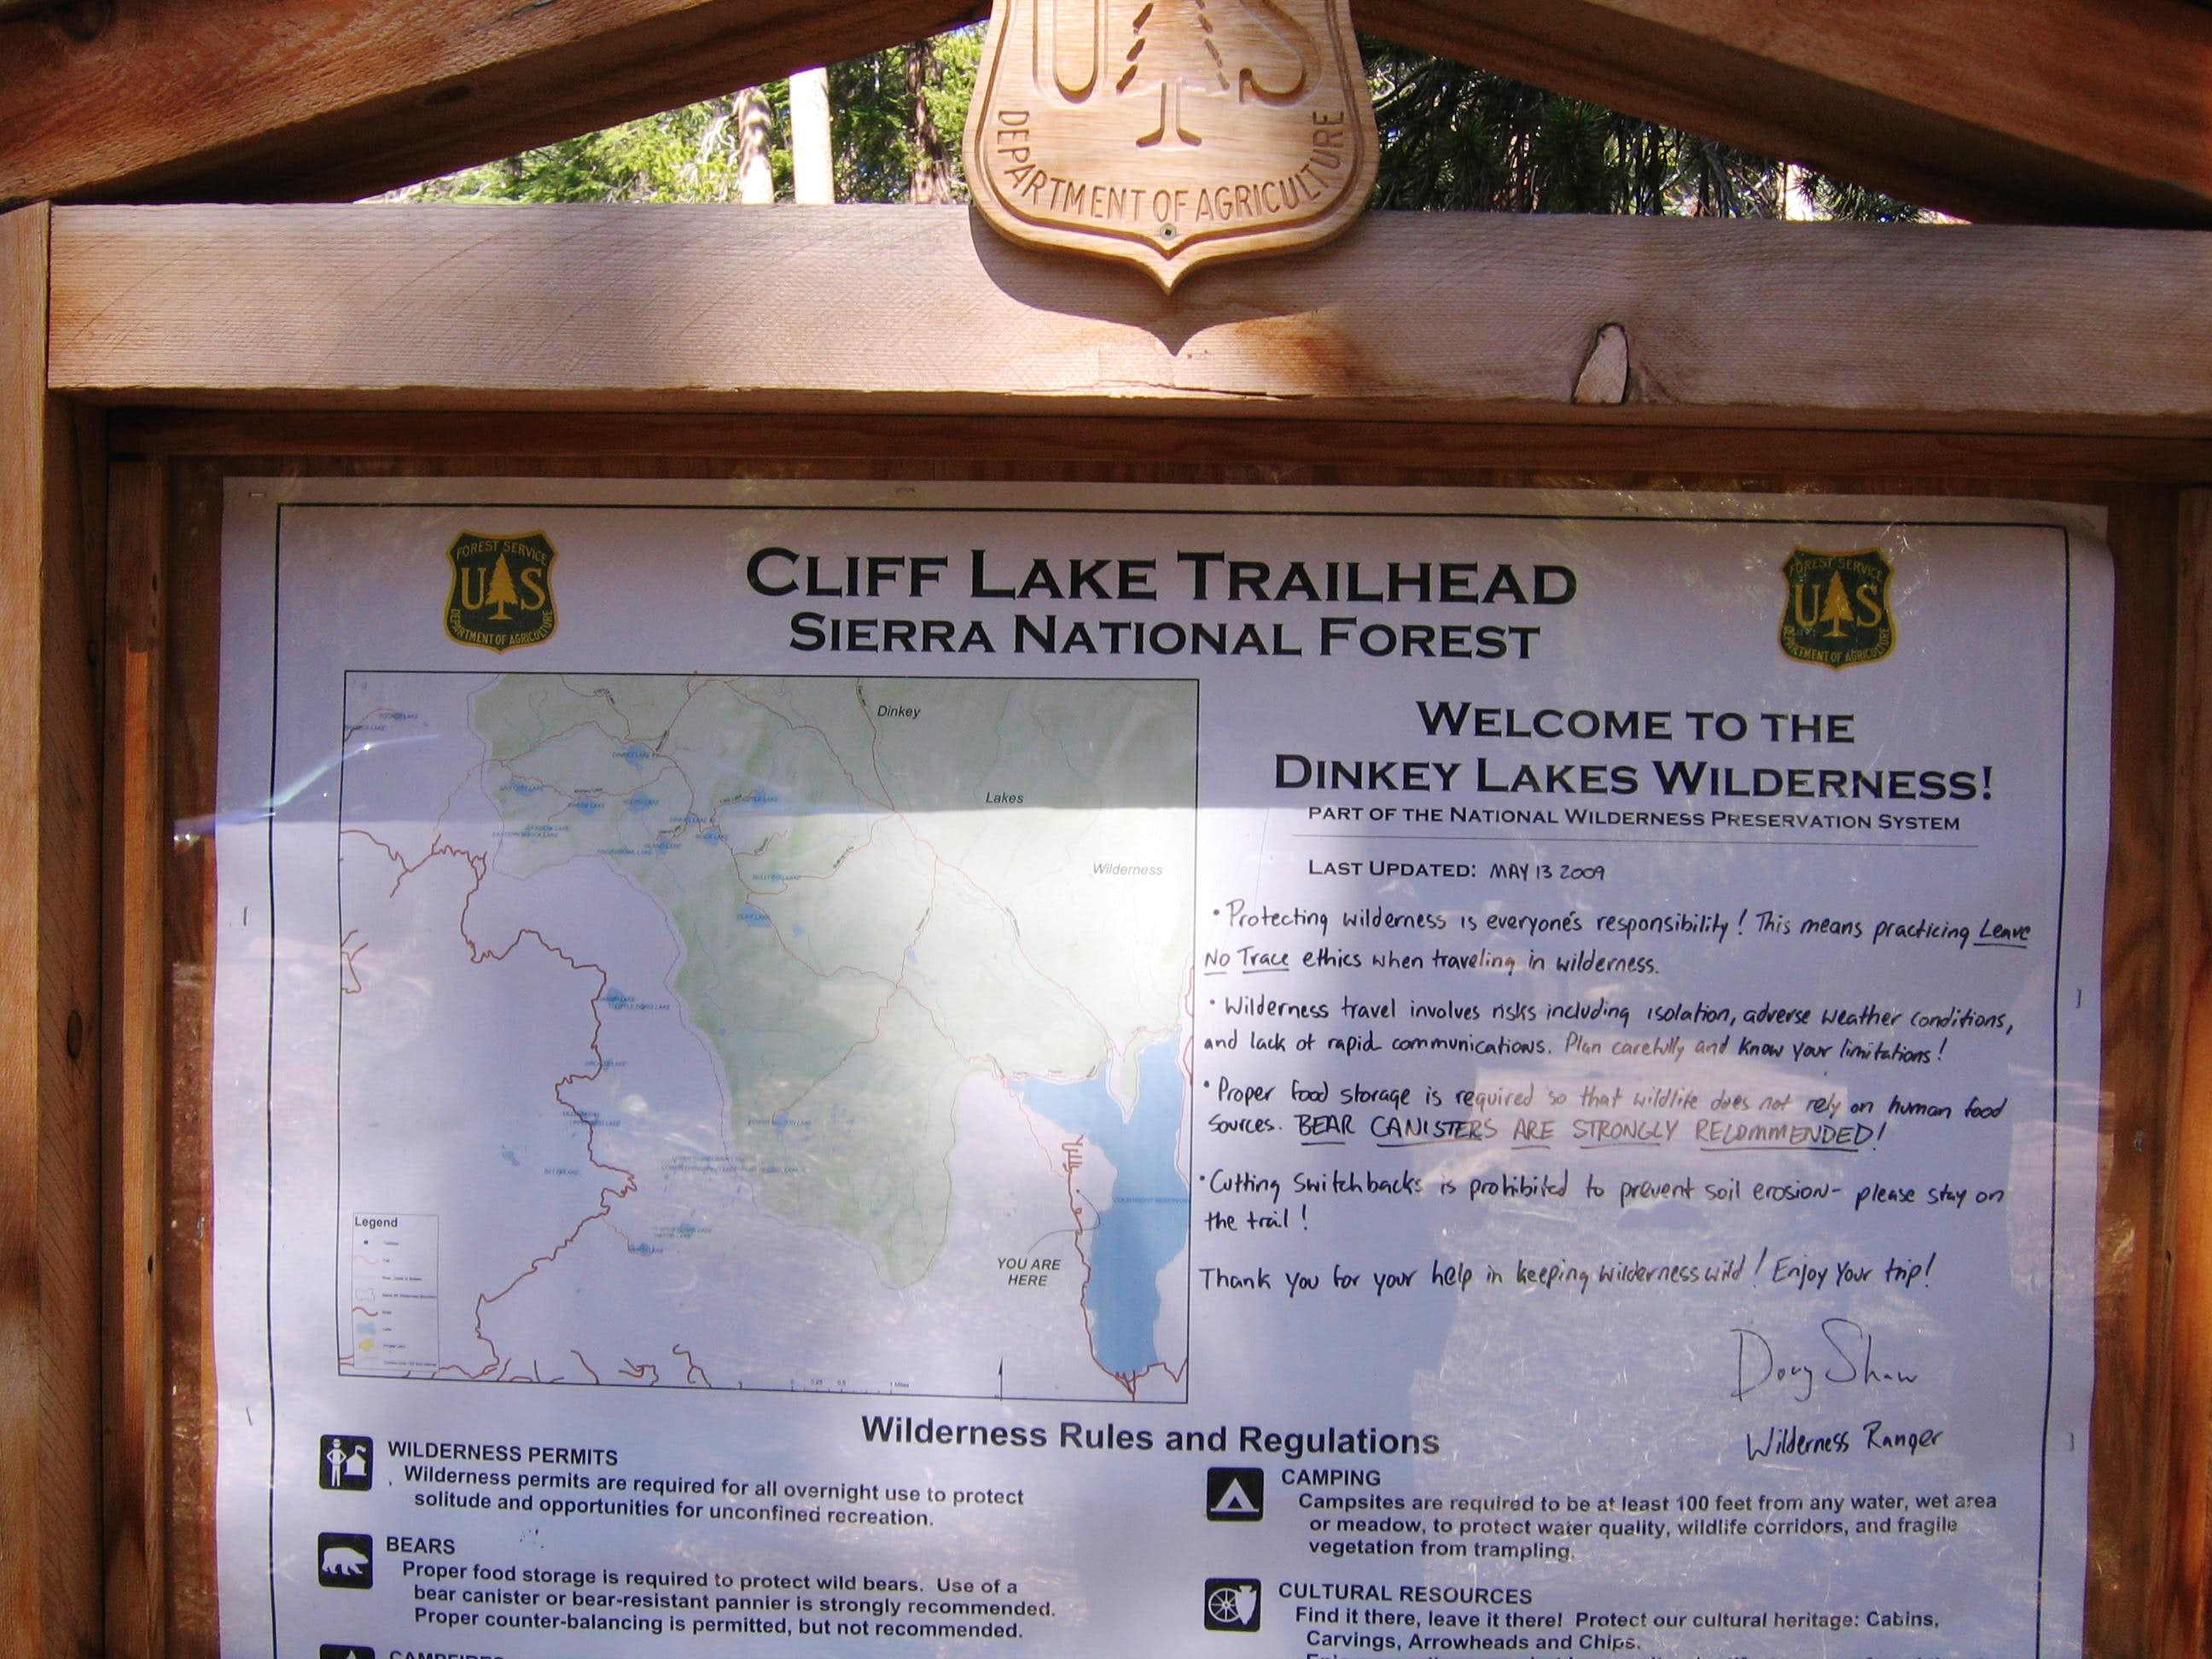 Cliff Lake Trailhead - Dinkey Lakes Wilderness